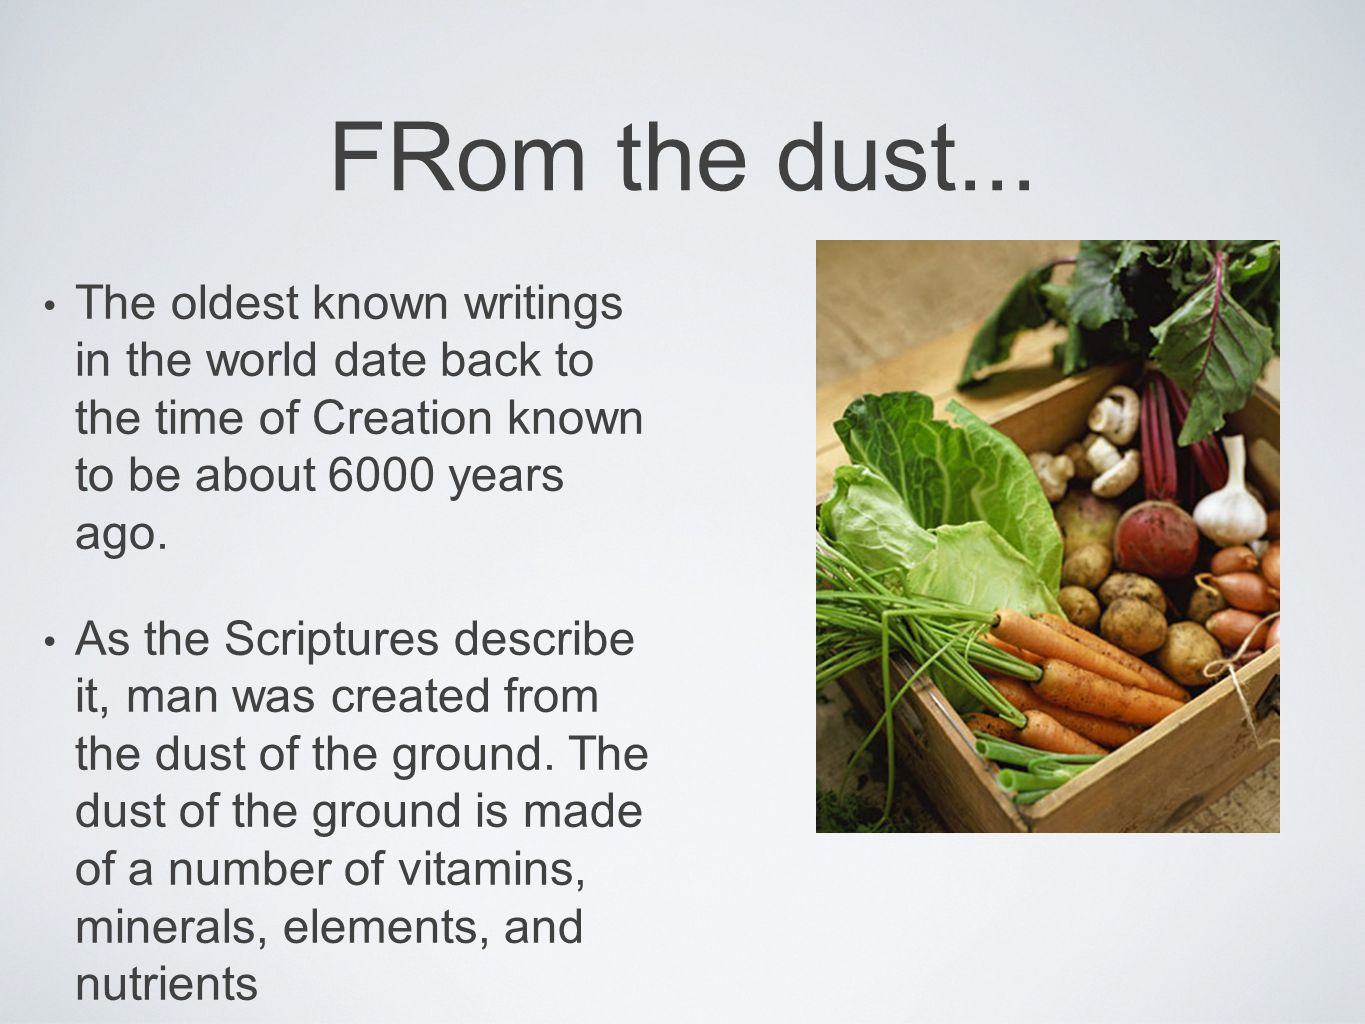 FRom the dust...The oldest known writings in the world date back to the time of Creation known to be about 6000 years ago.